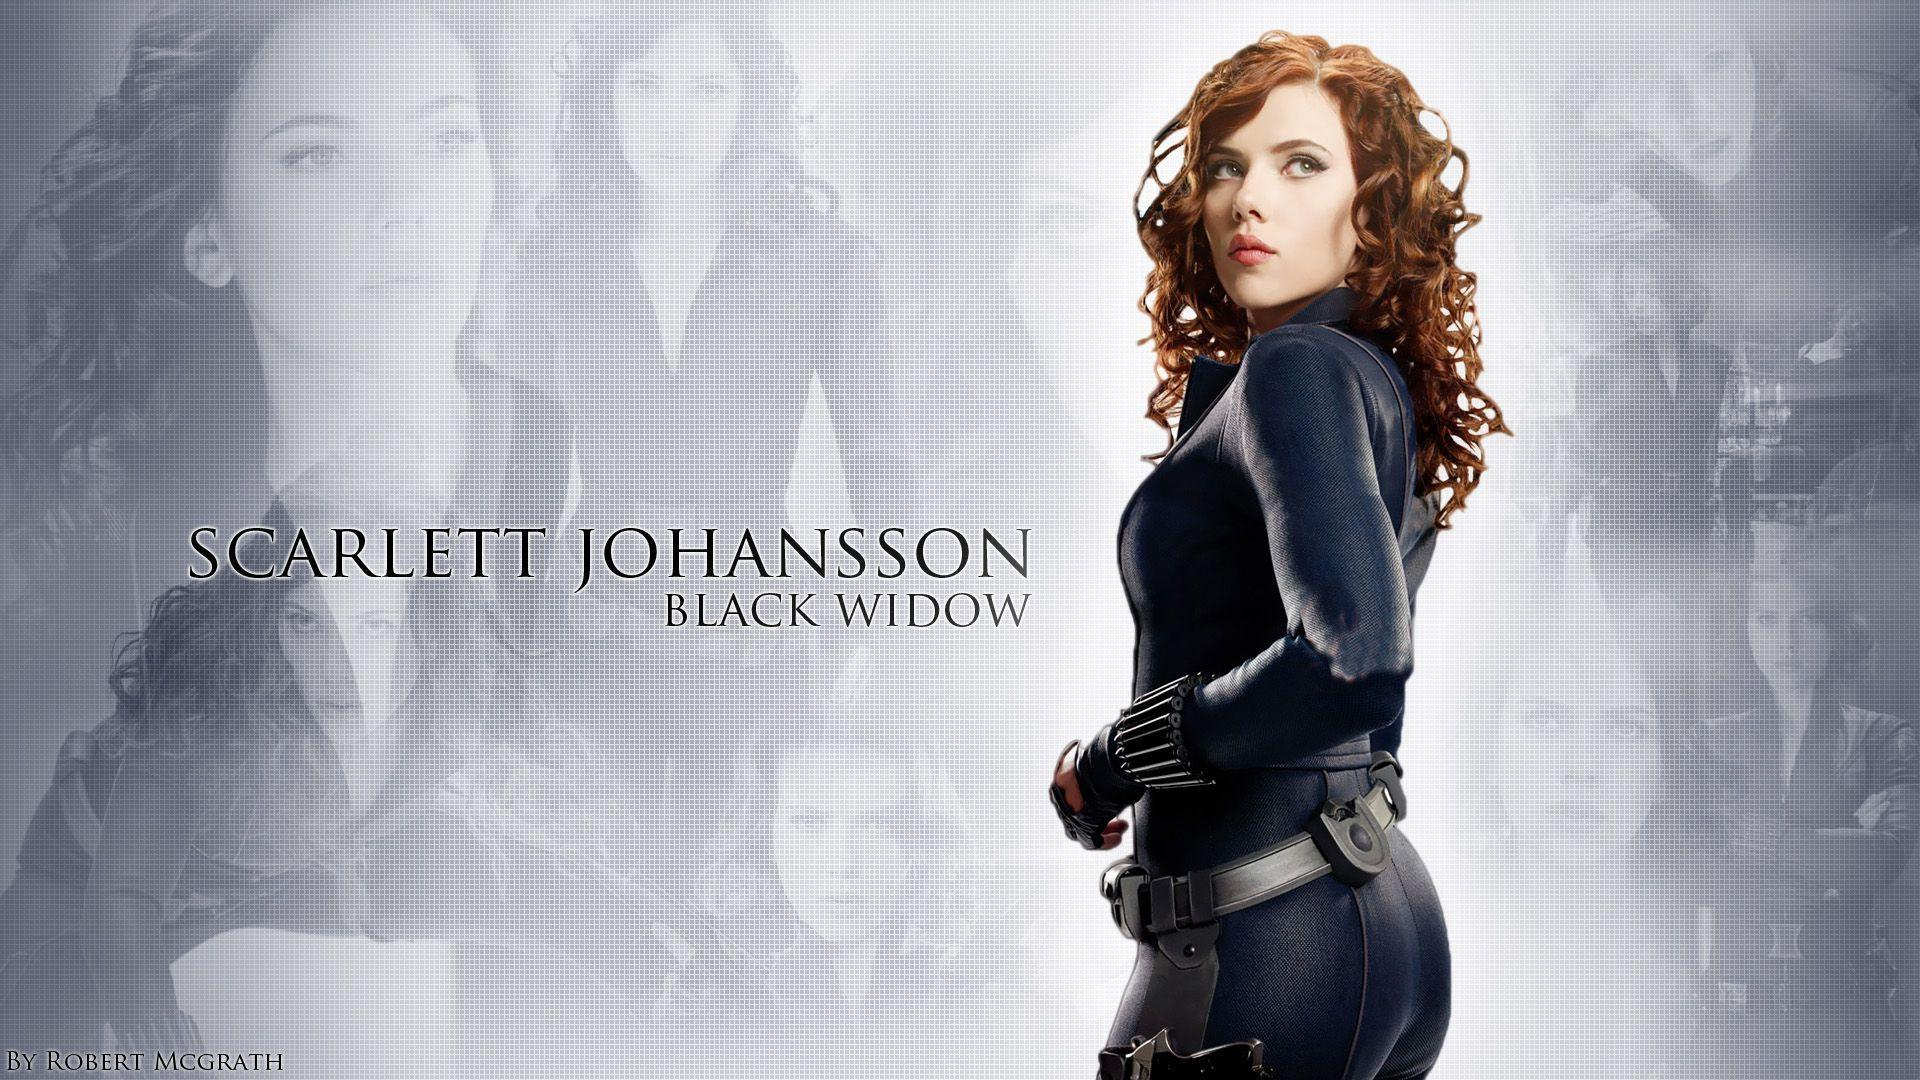 Scarlett Johansson Wallpapers (Wallpaper 1-12 of 12)